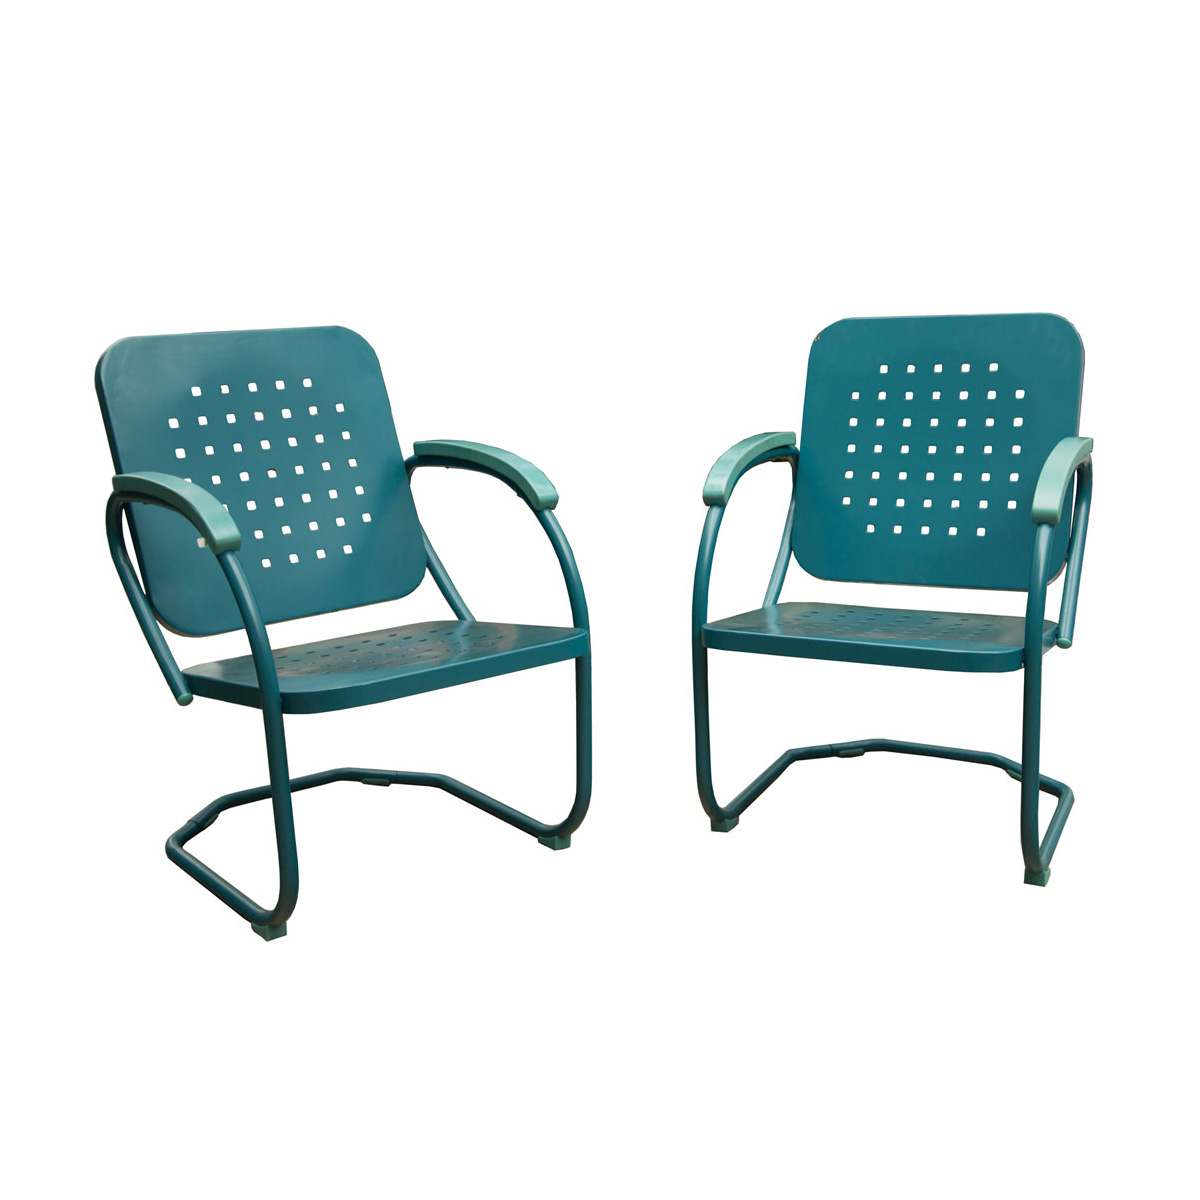 Hanover Retro Set Of 2 Metal C Spring Chairs In Caribbean Blue